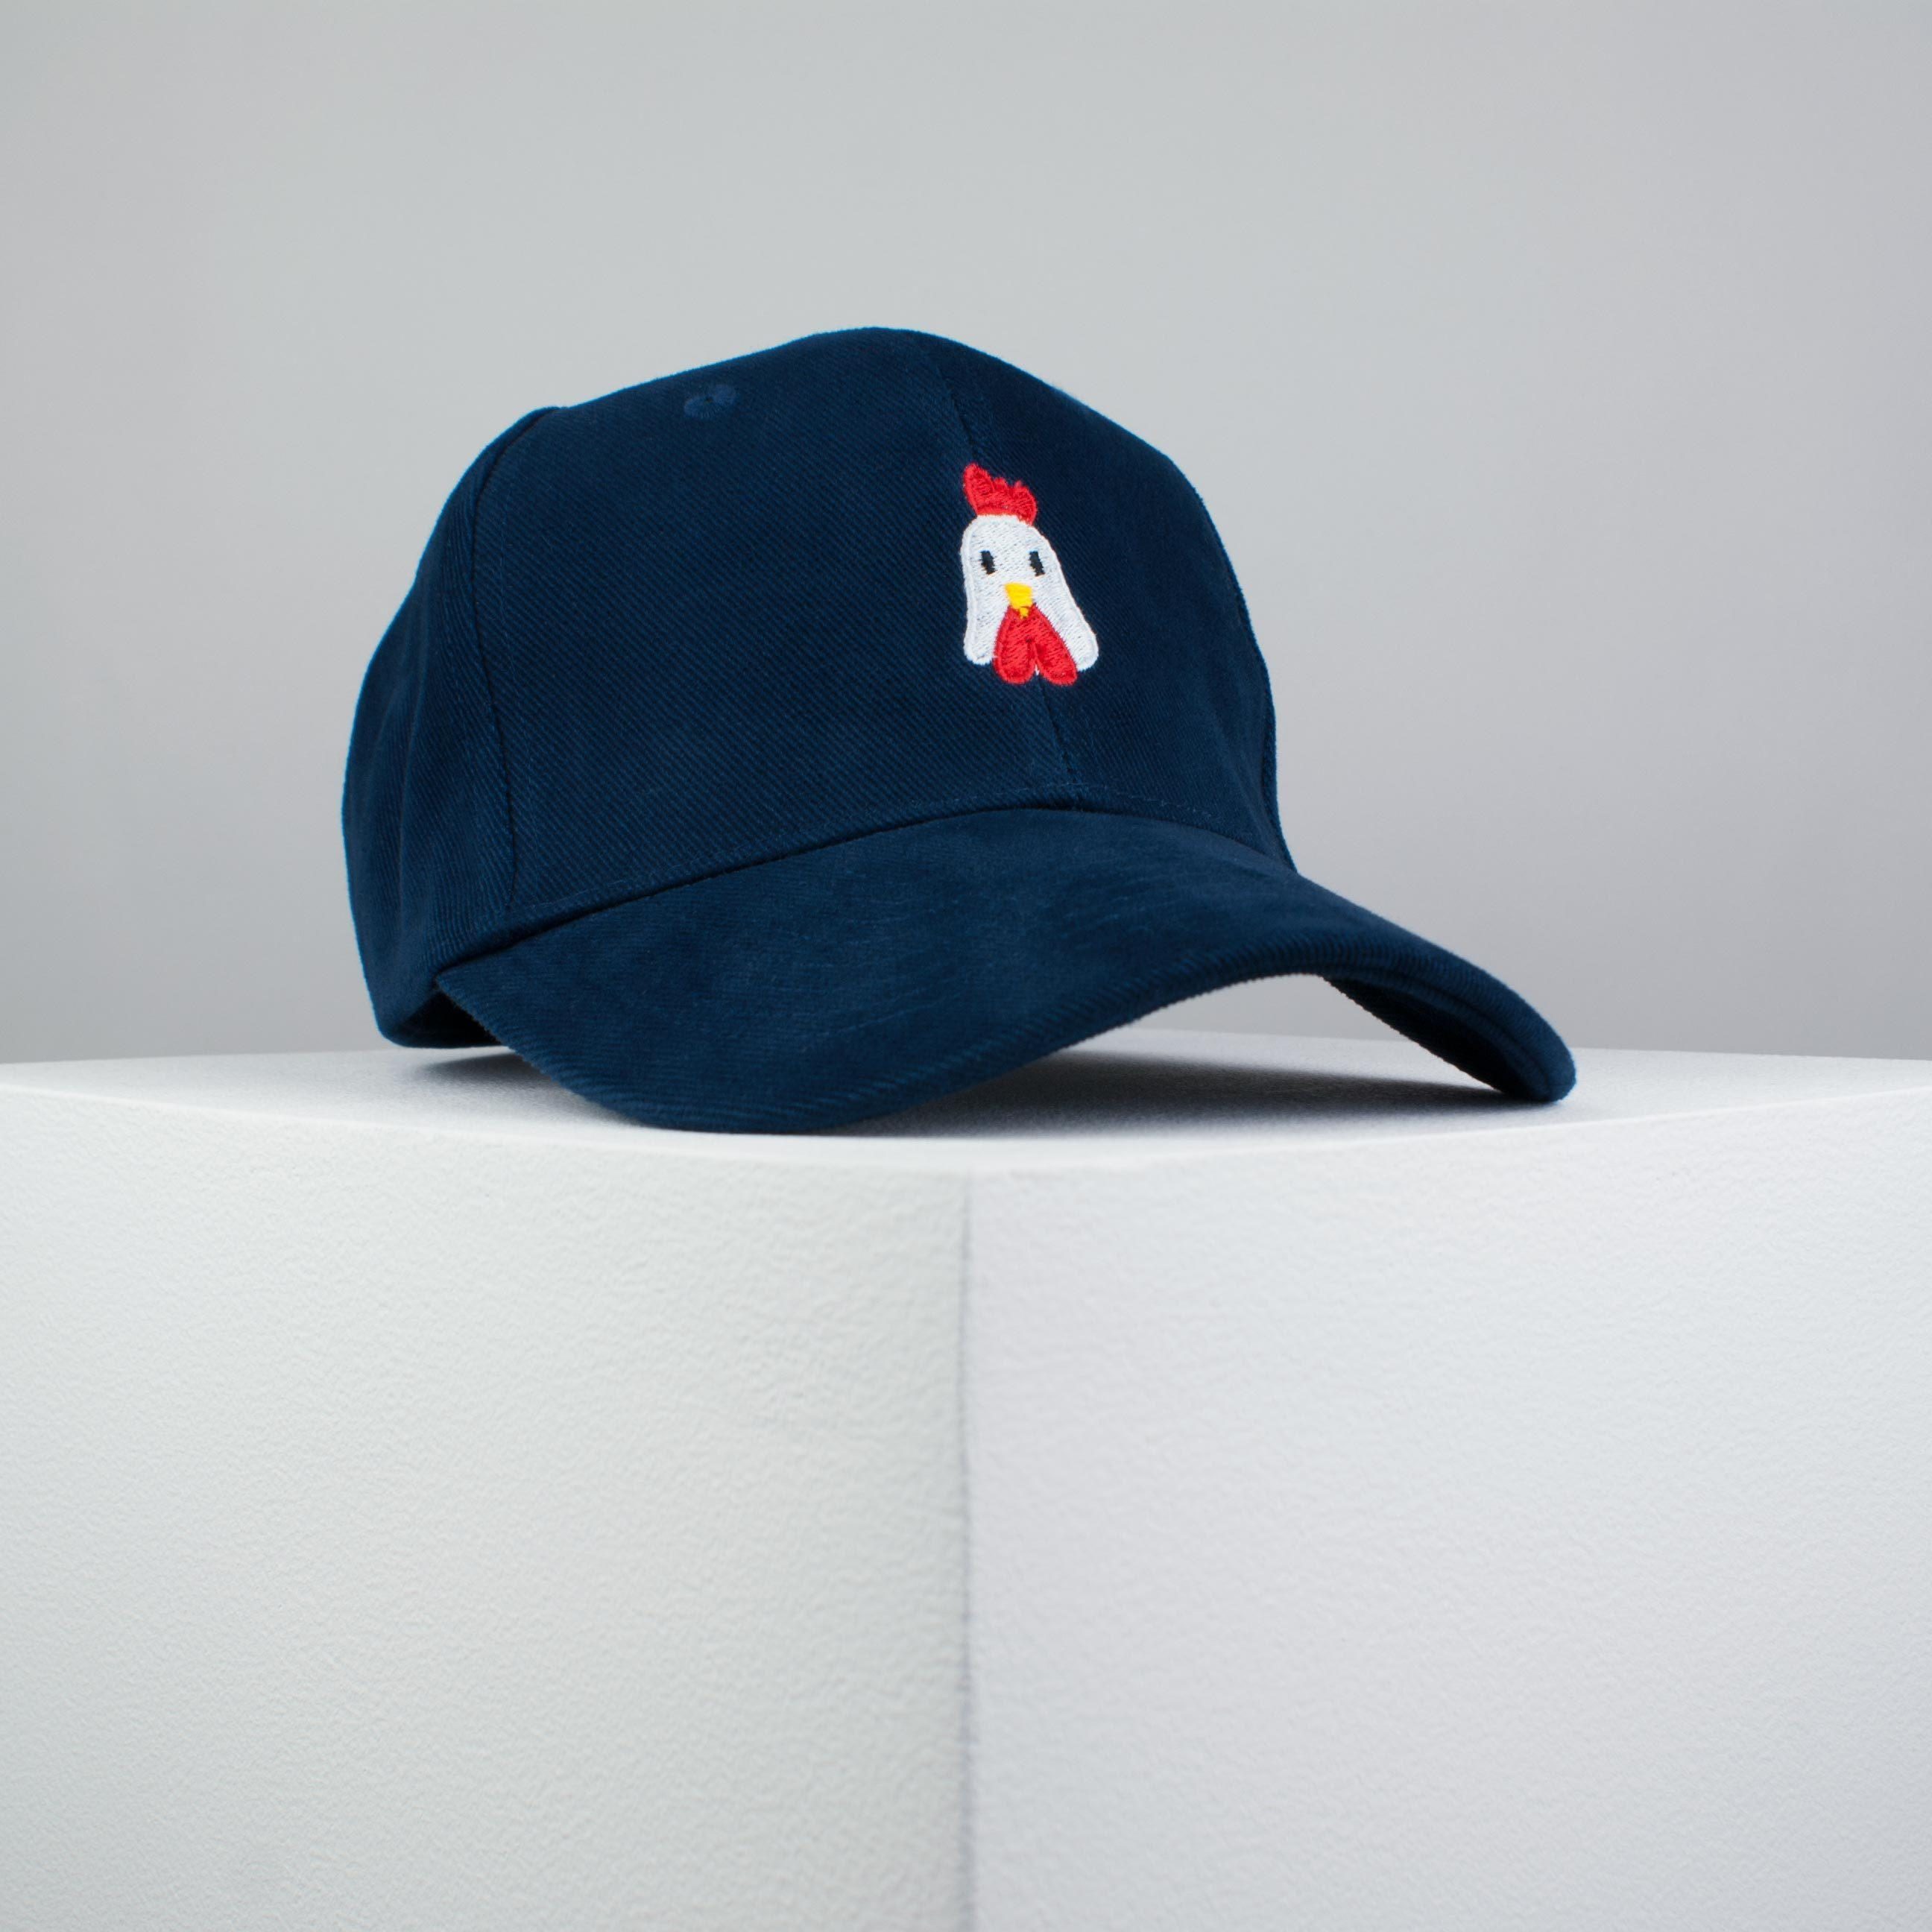 Chicken embroidered baseball cap navy   bird   patches   animal   embroidery    patch ... f6037141075